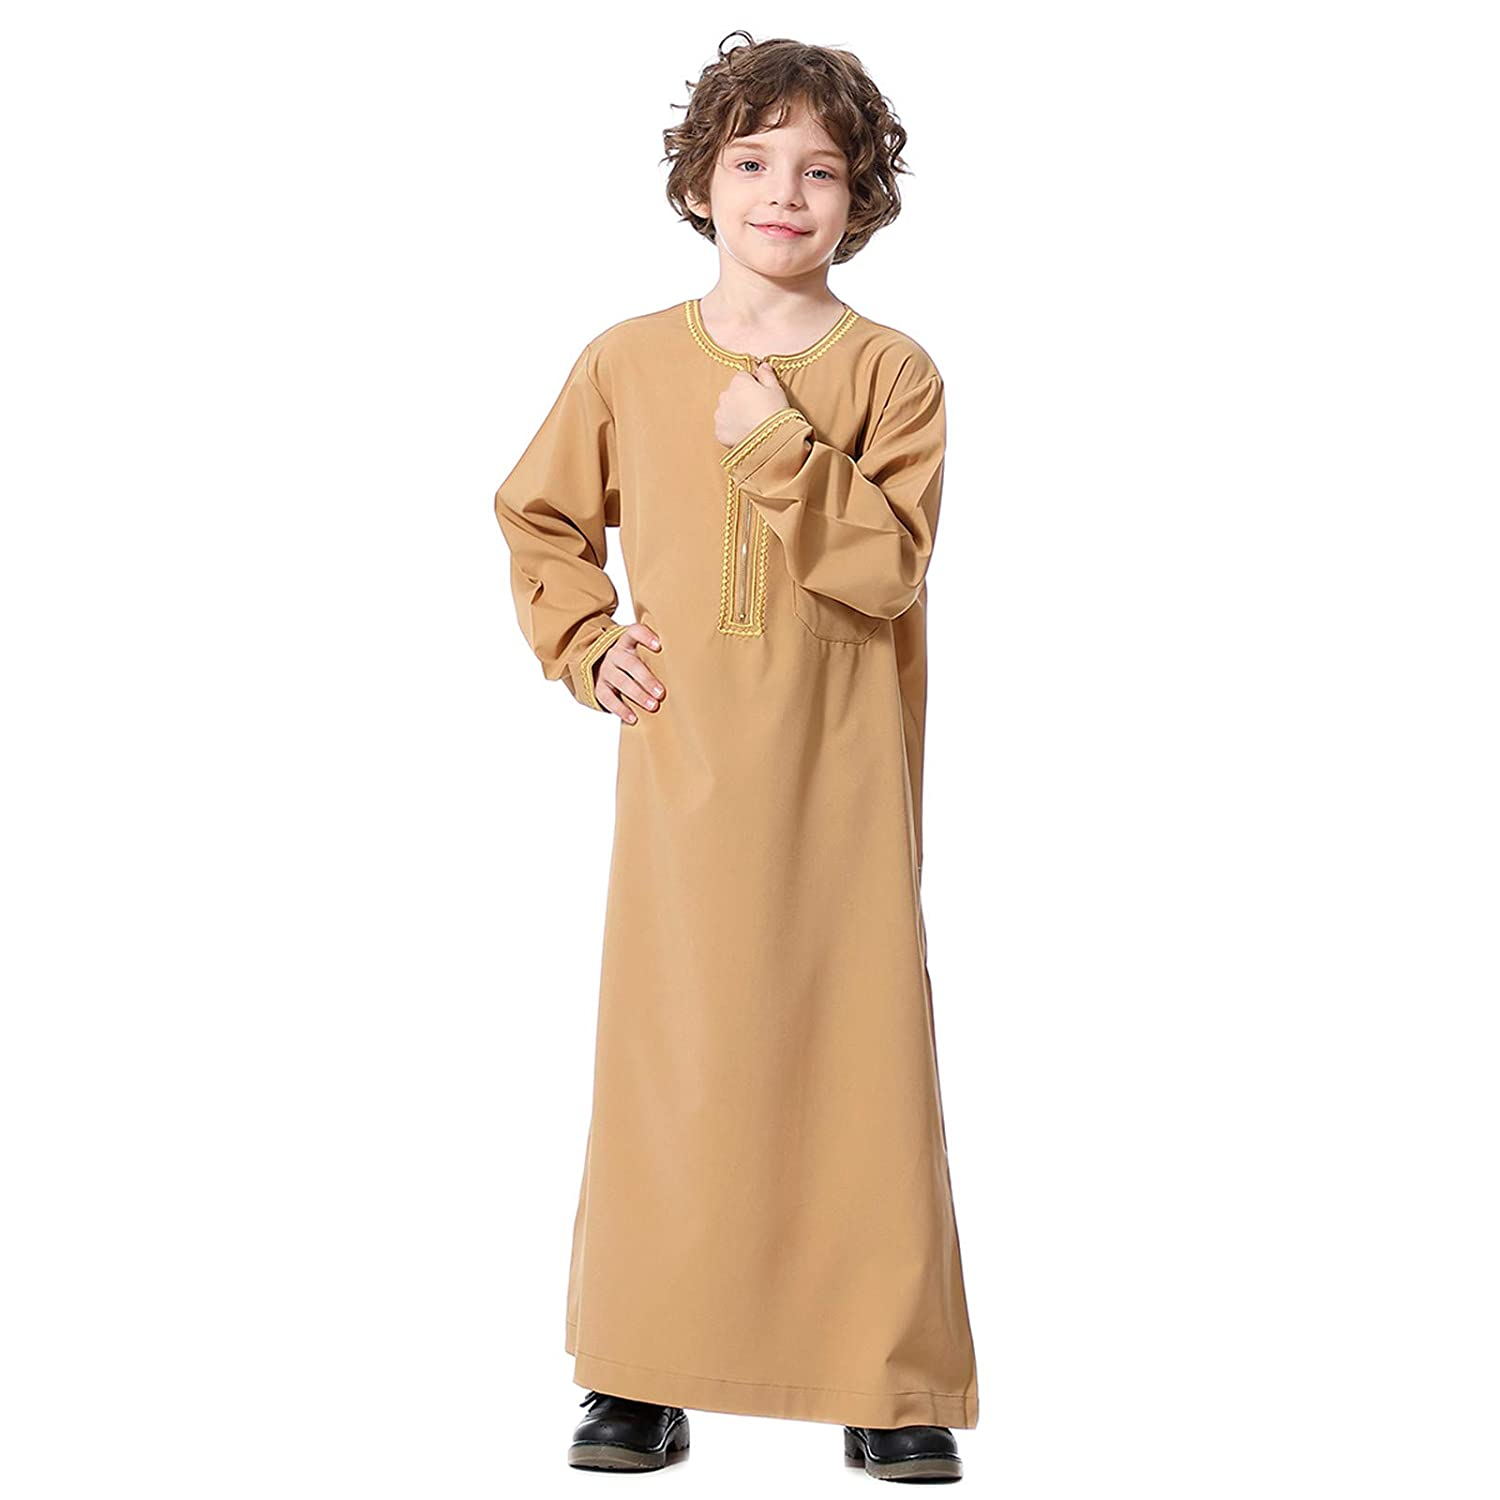 Moonite Muslim Robes for Boys - Solid Color Robe for Eid,Muslim Clothes